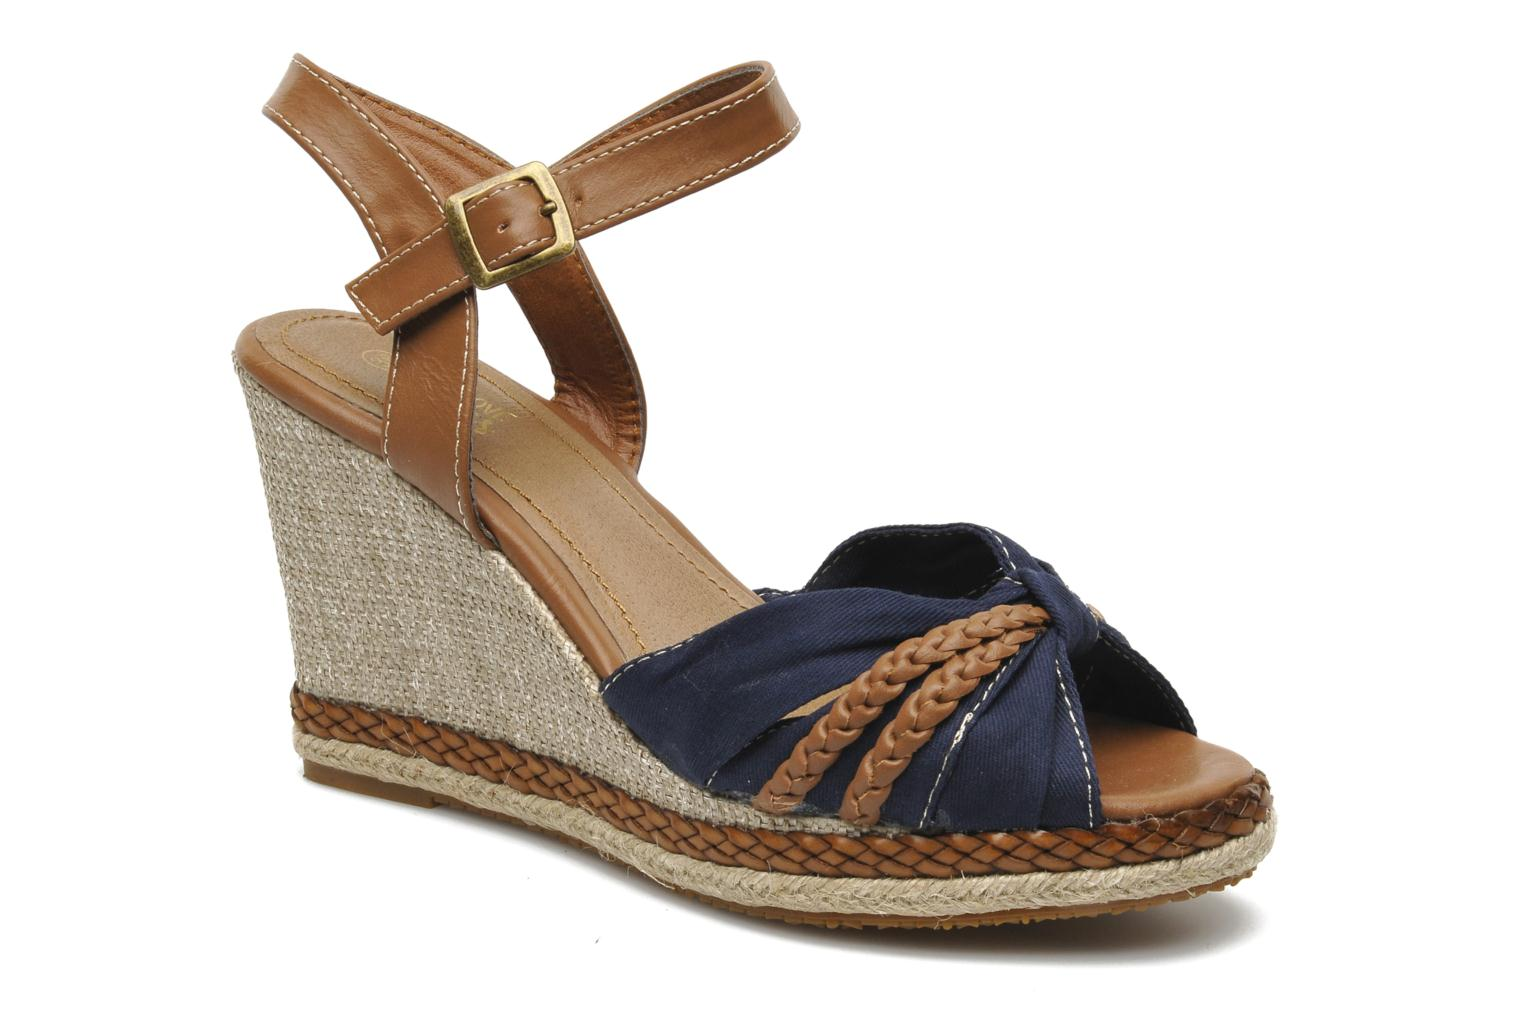 Marques Chaussure femme I Love Shoes femme Sukifo Navy